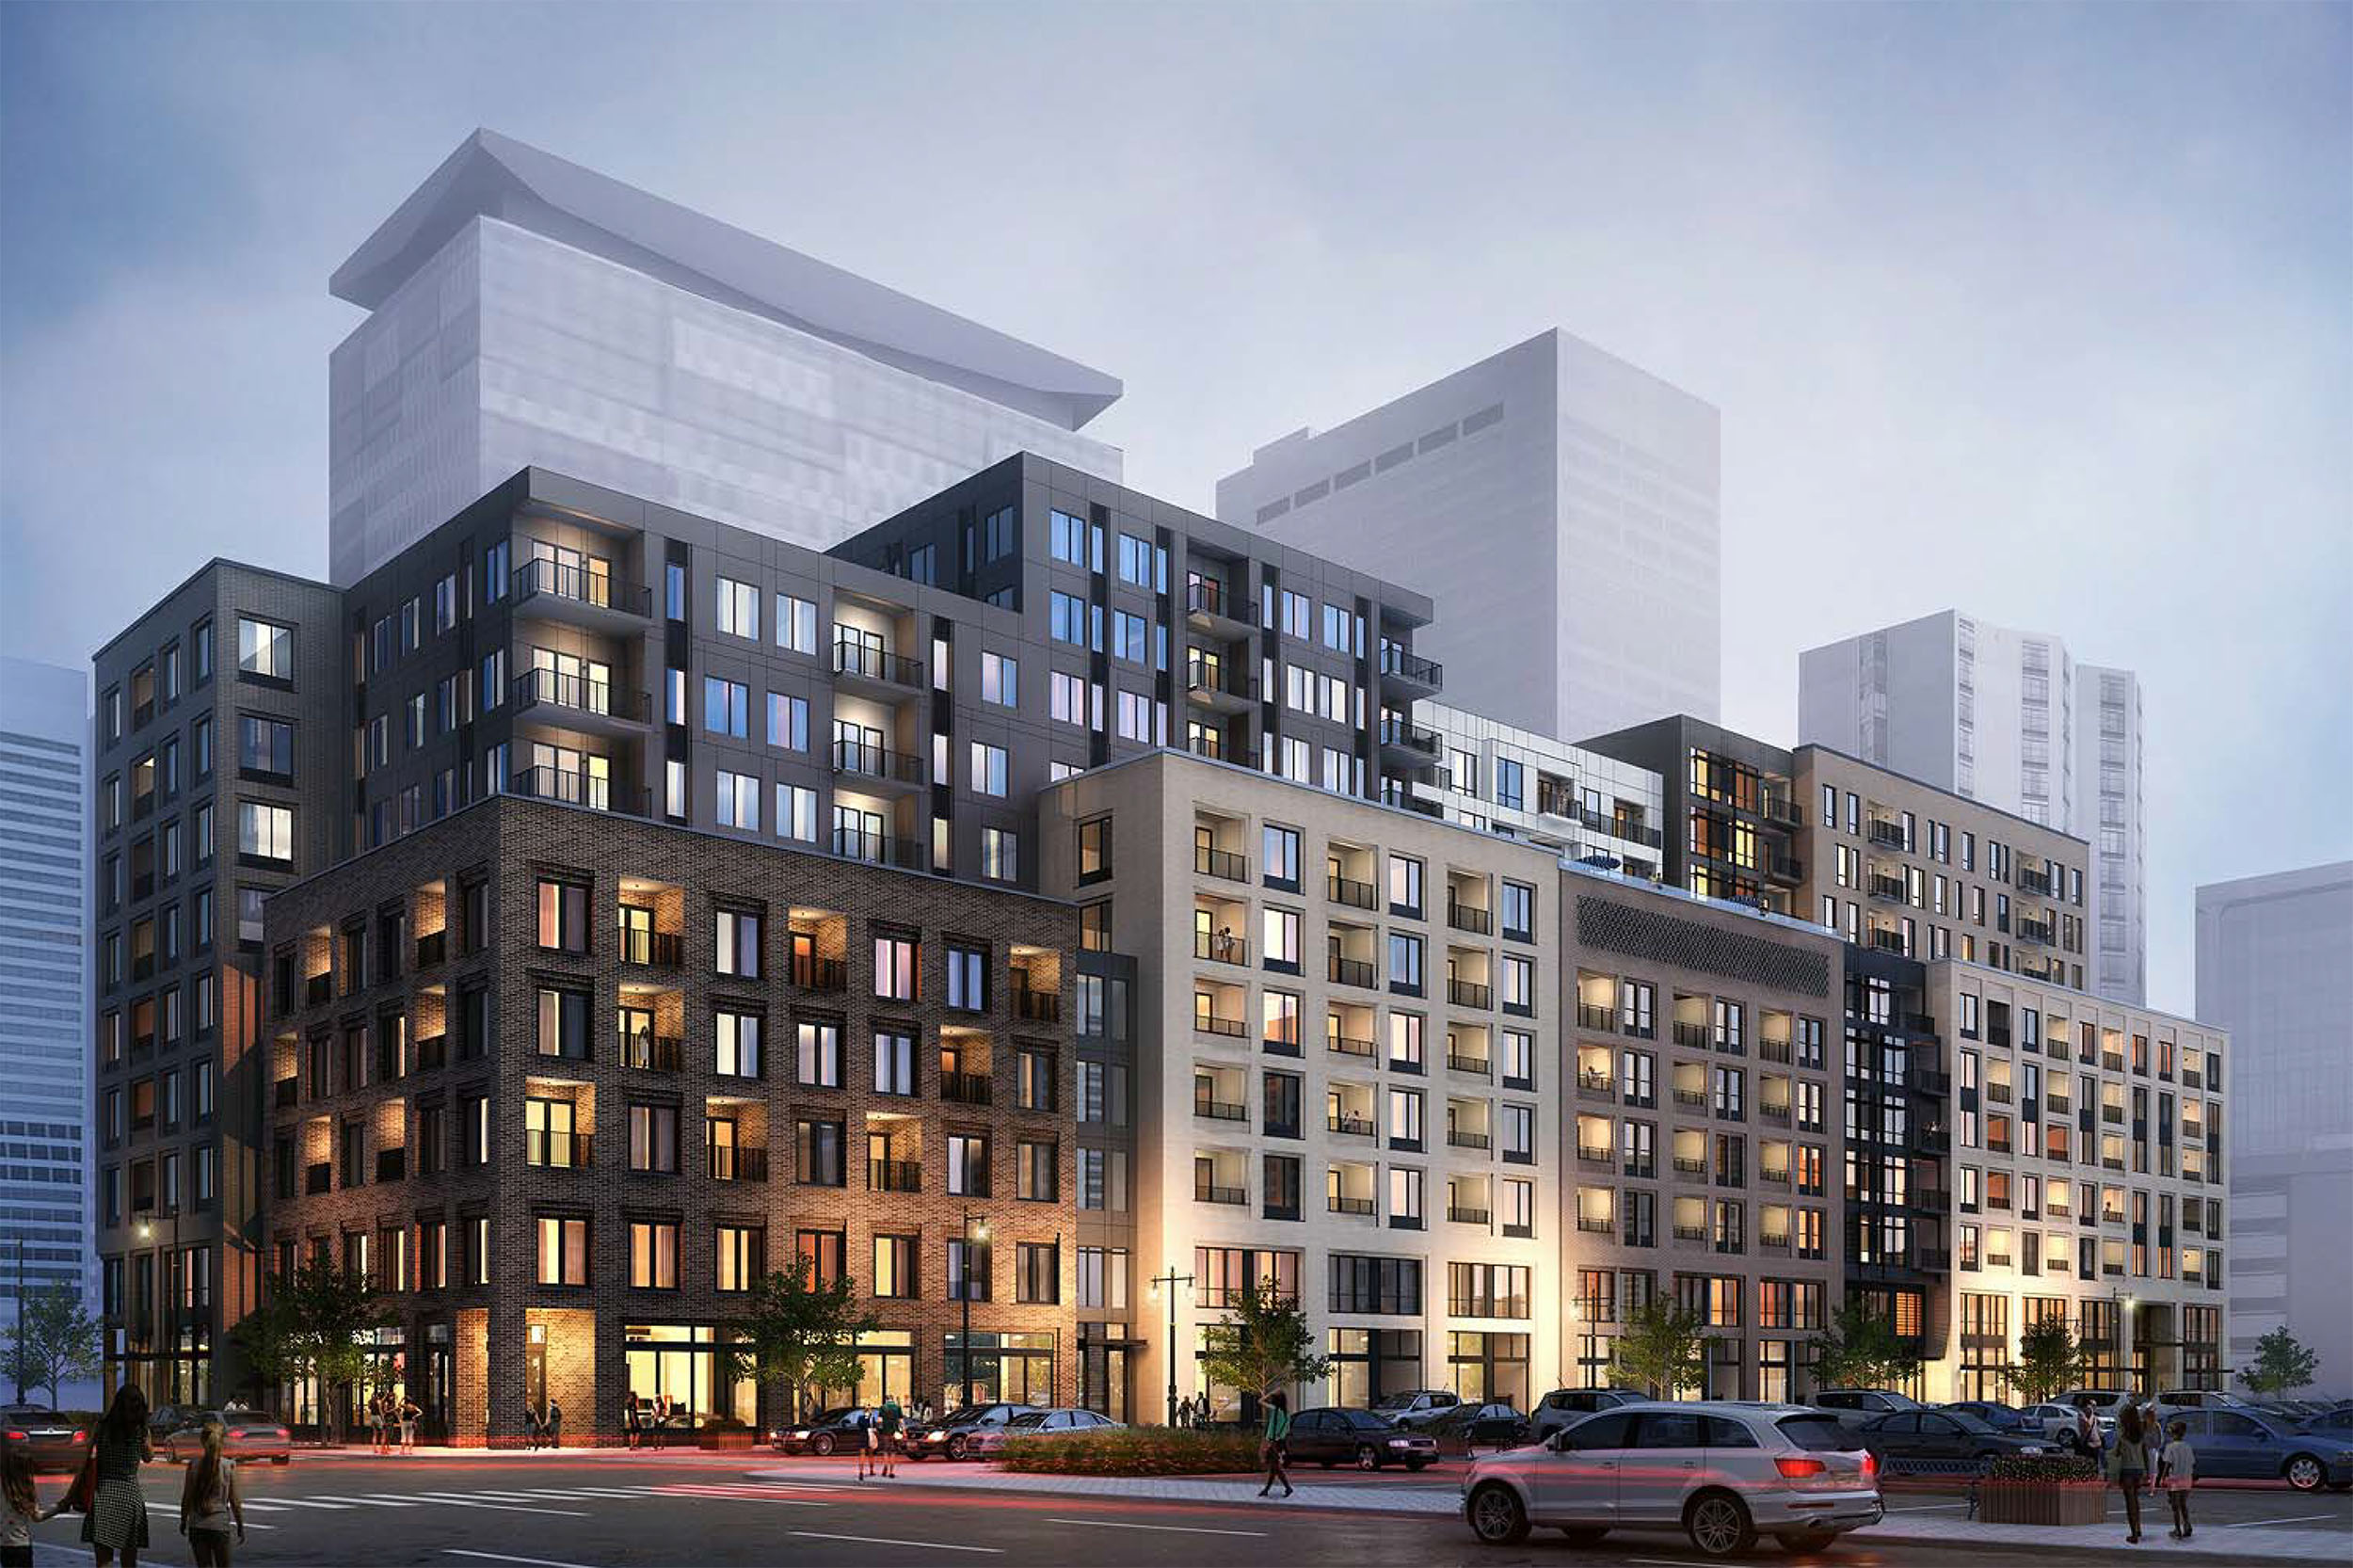 Rendering of the proposed 18th and Market Apartments, courtesy of Johnson Nathan Strohe